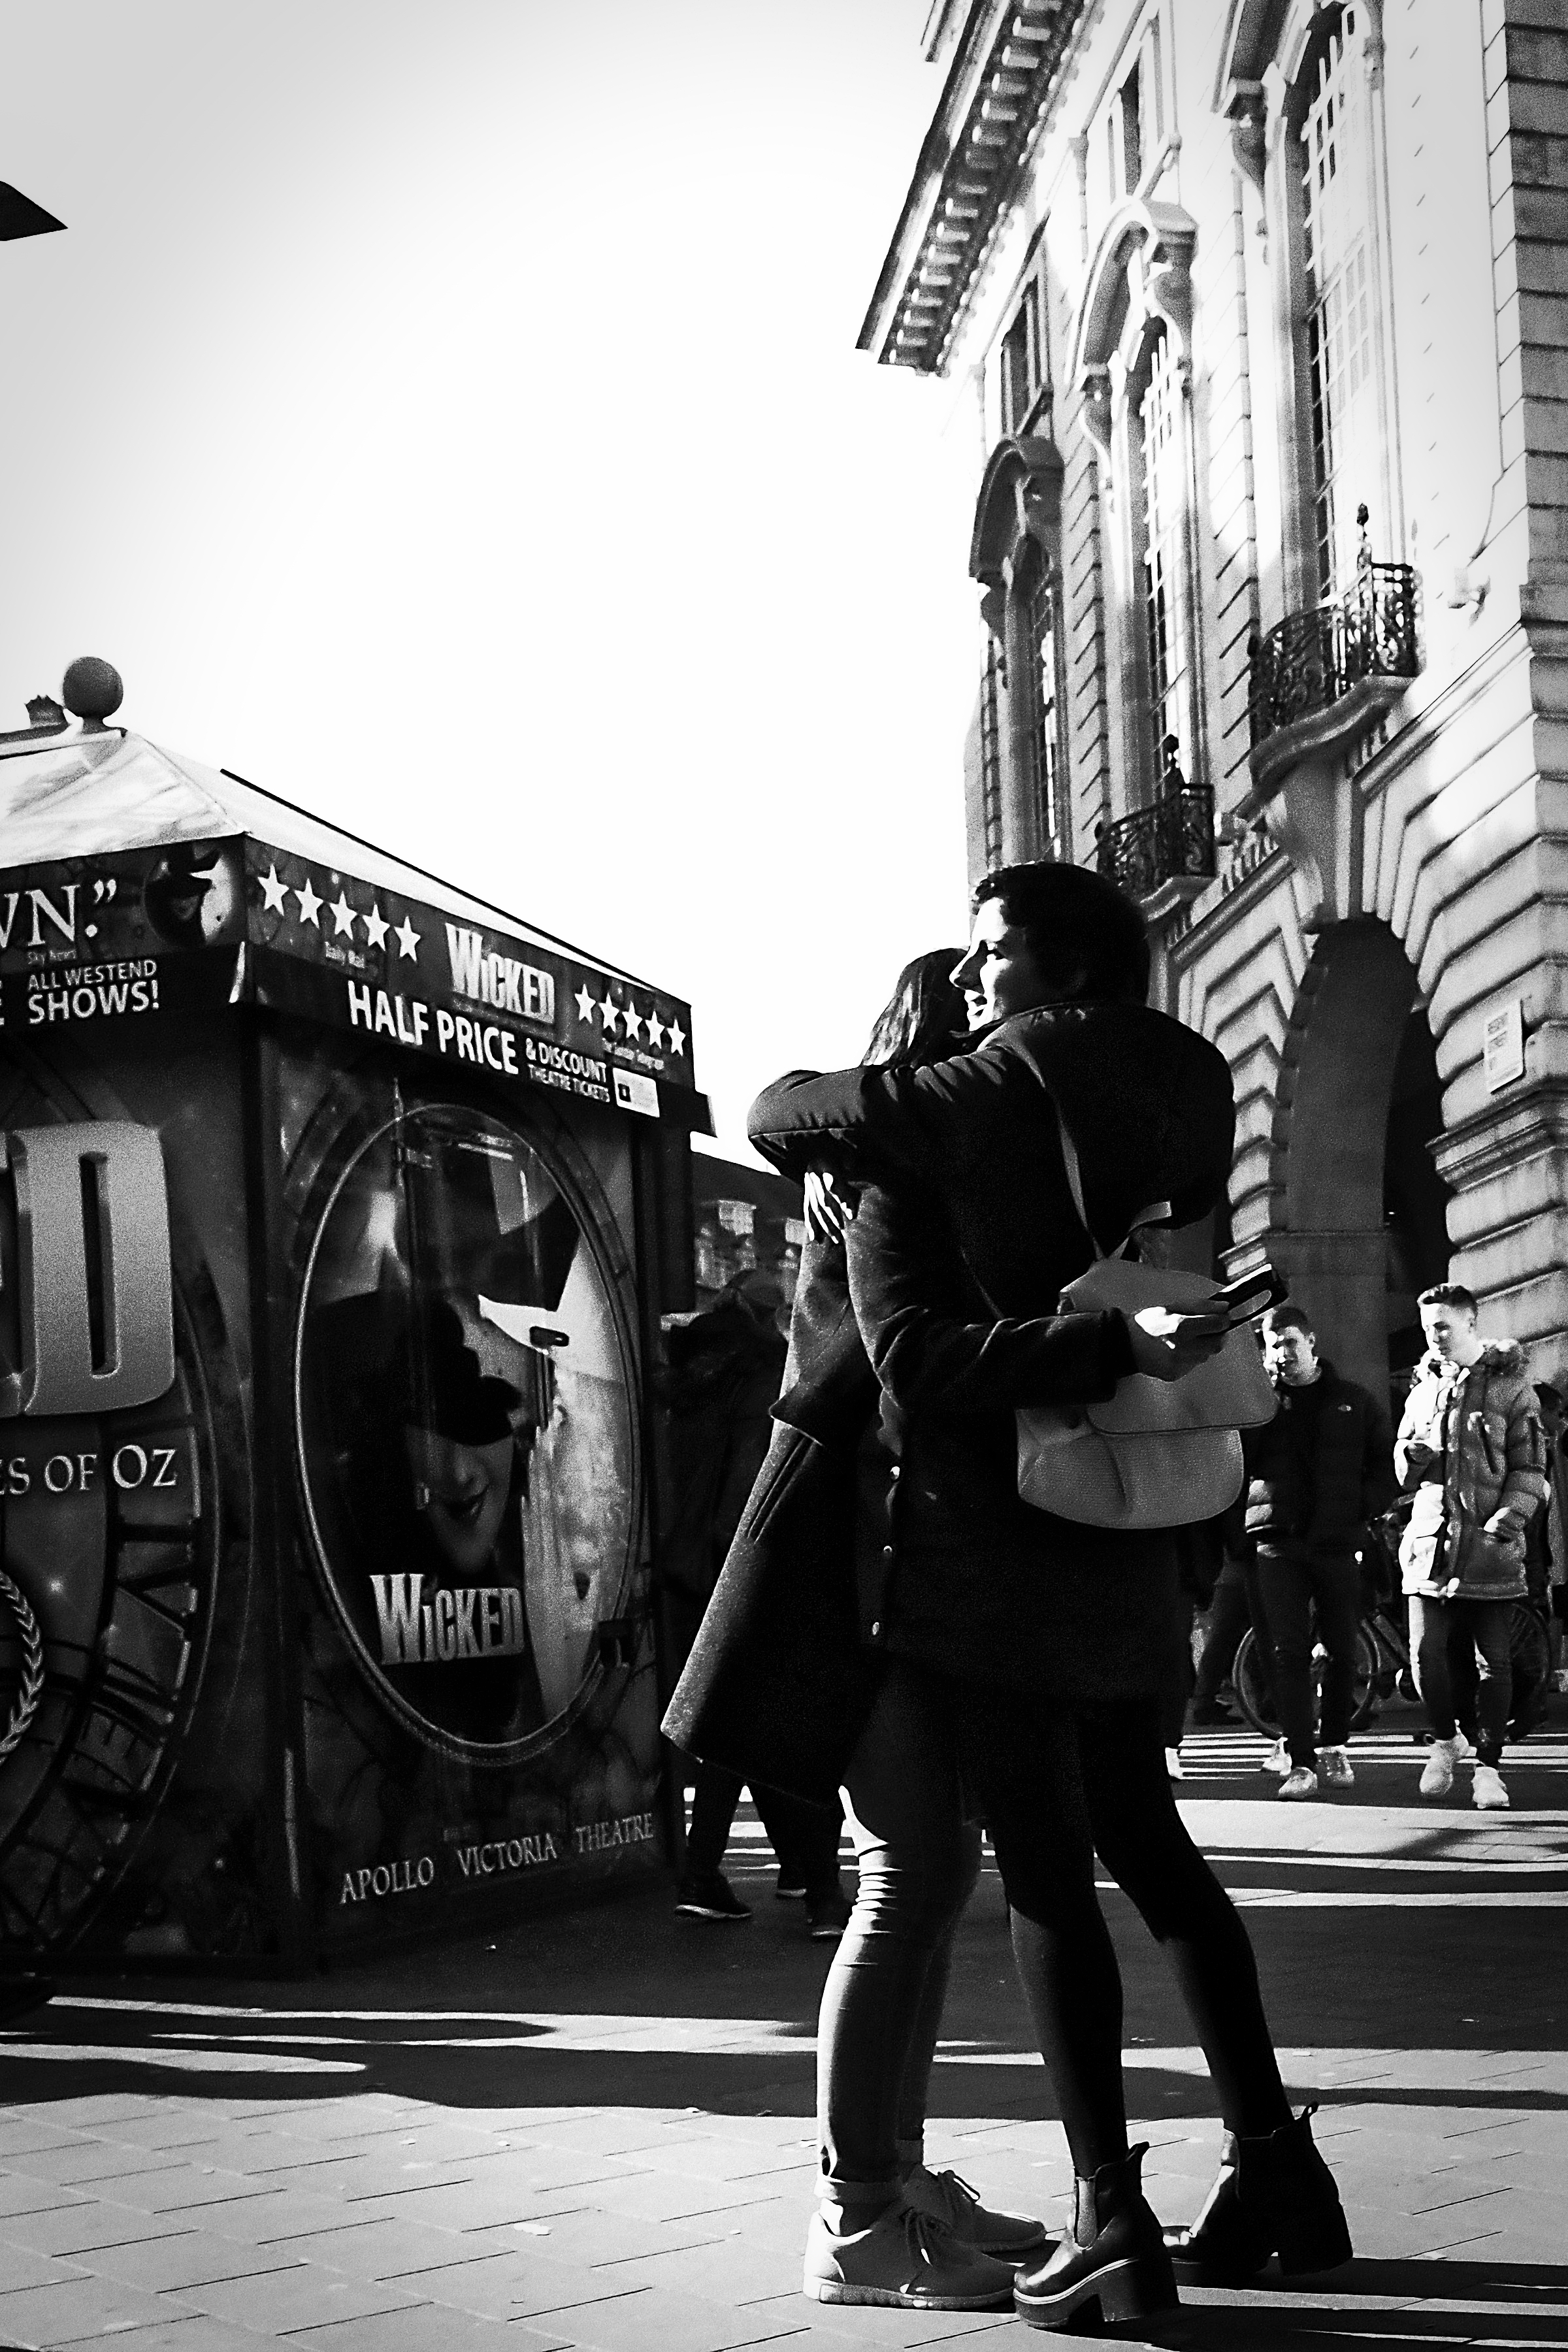 Piccadilly Circus, London, Feb 2017